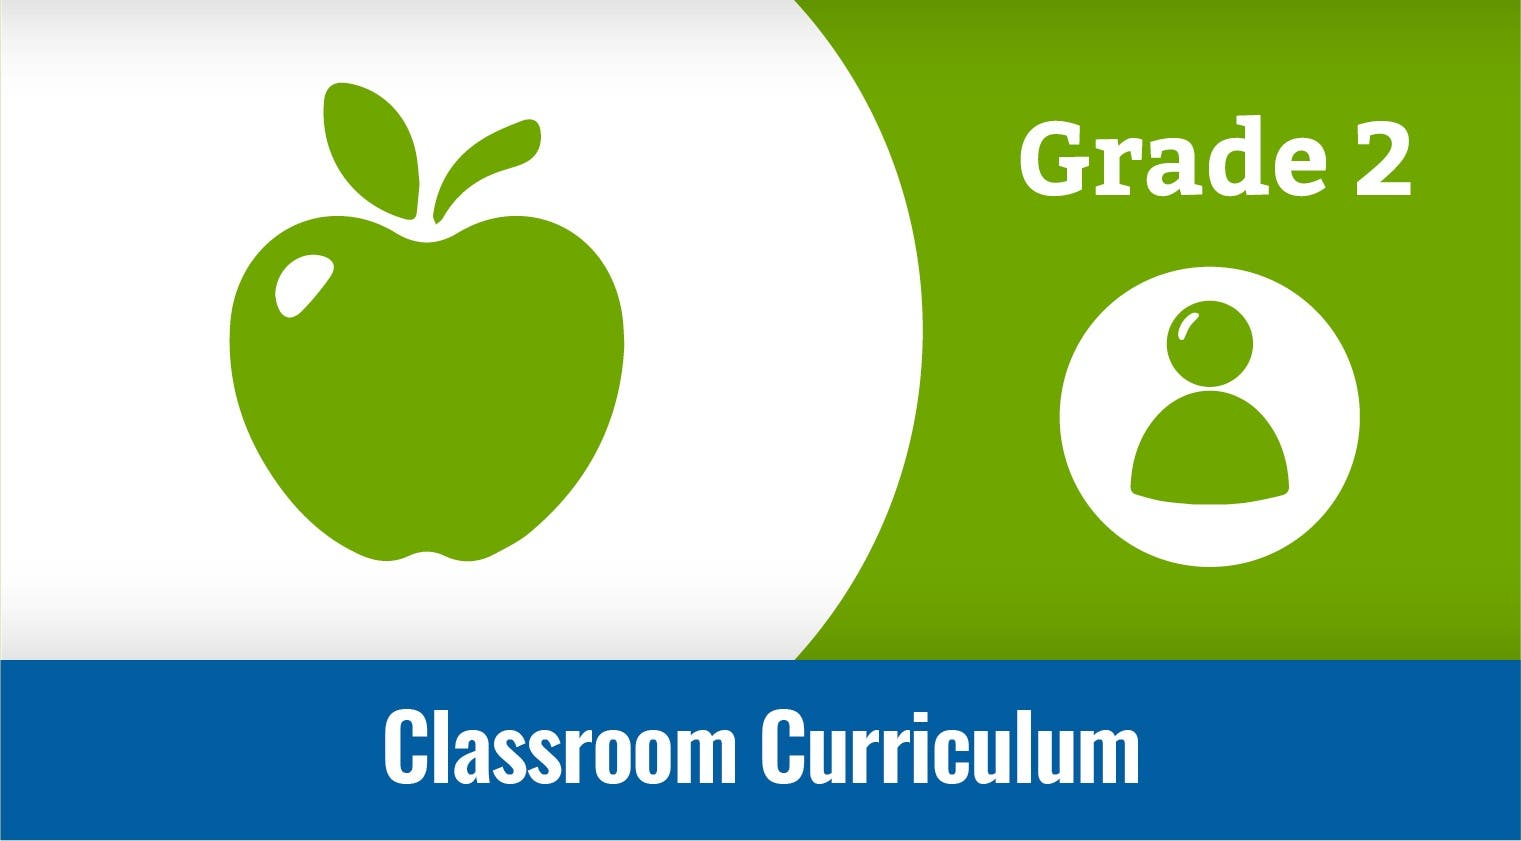 Grade 2 Classroom Curriculum - Celebrate Health!